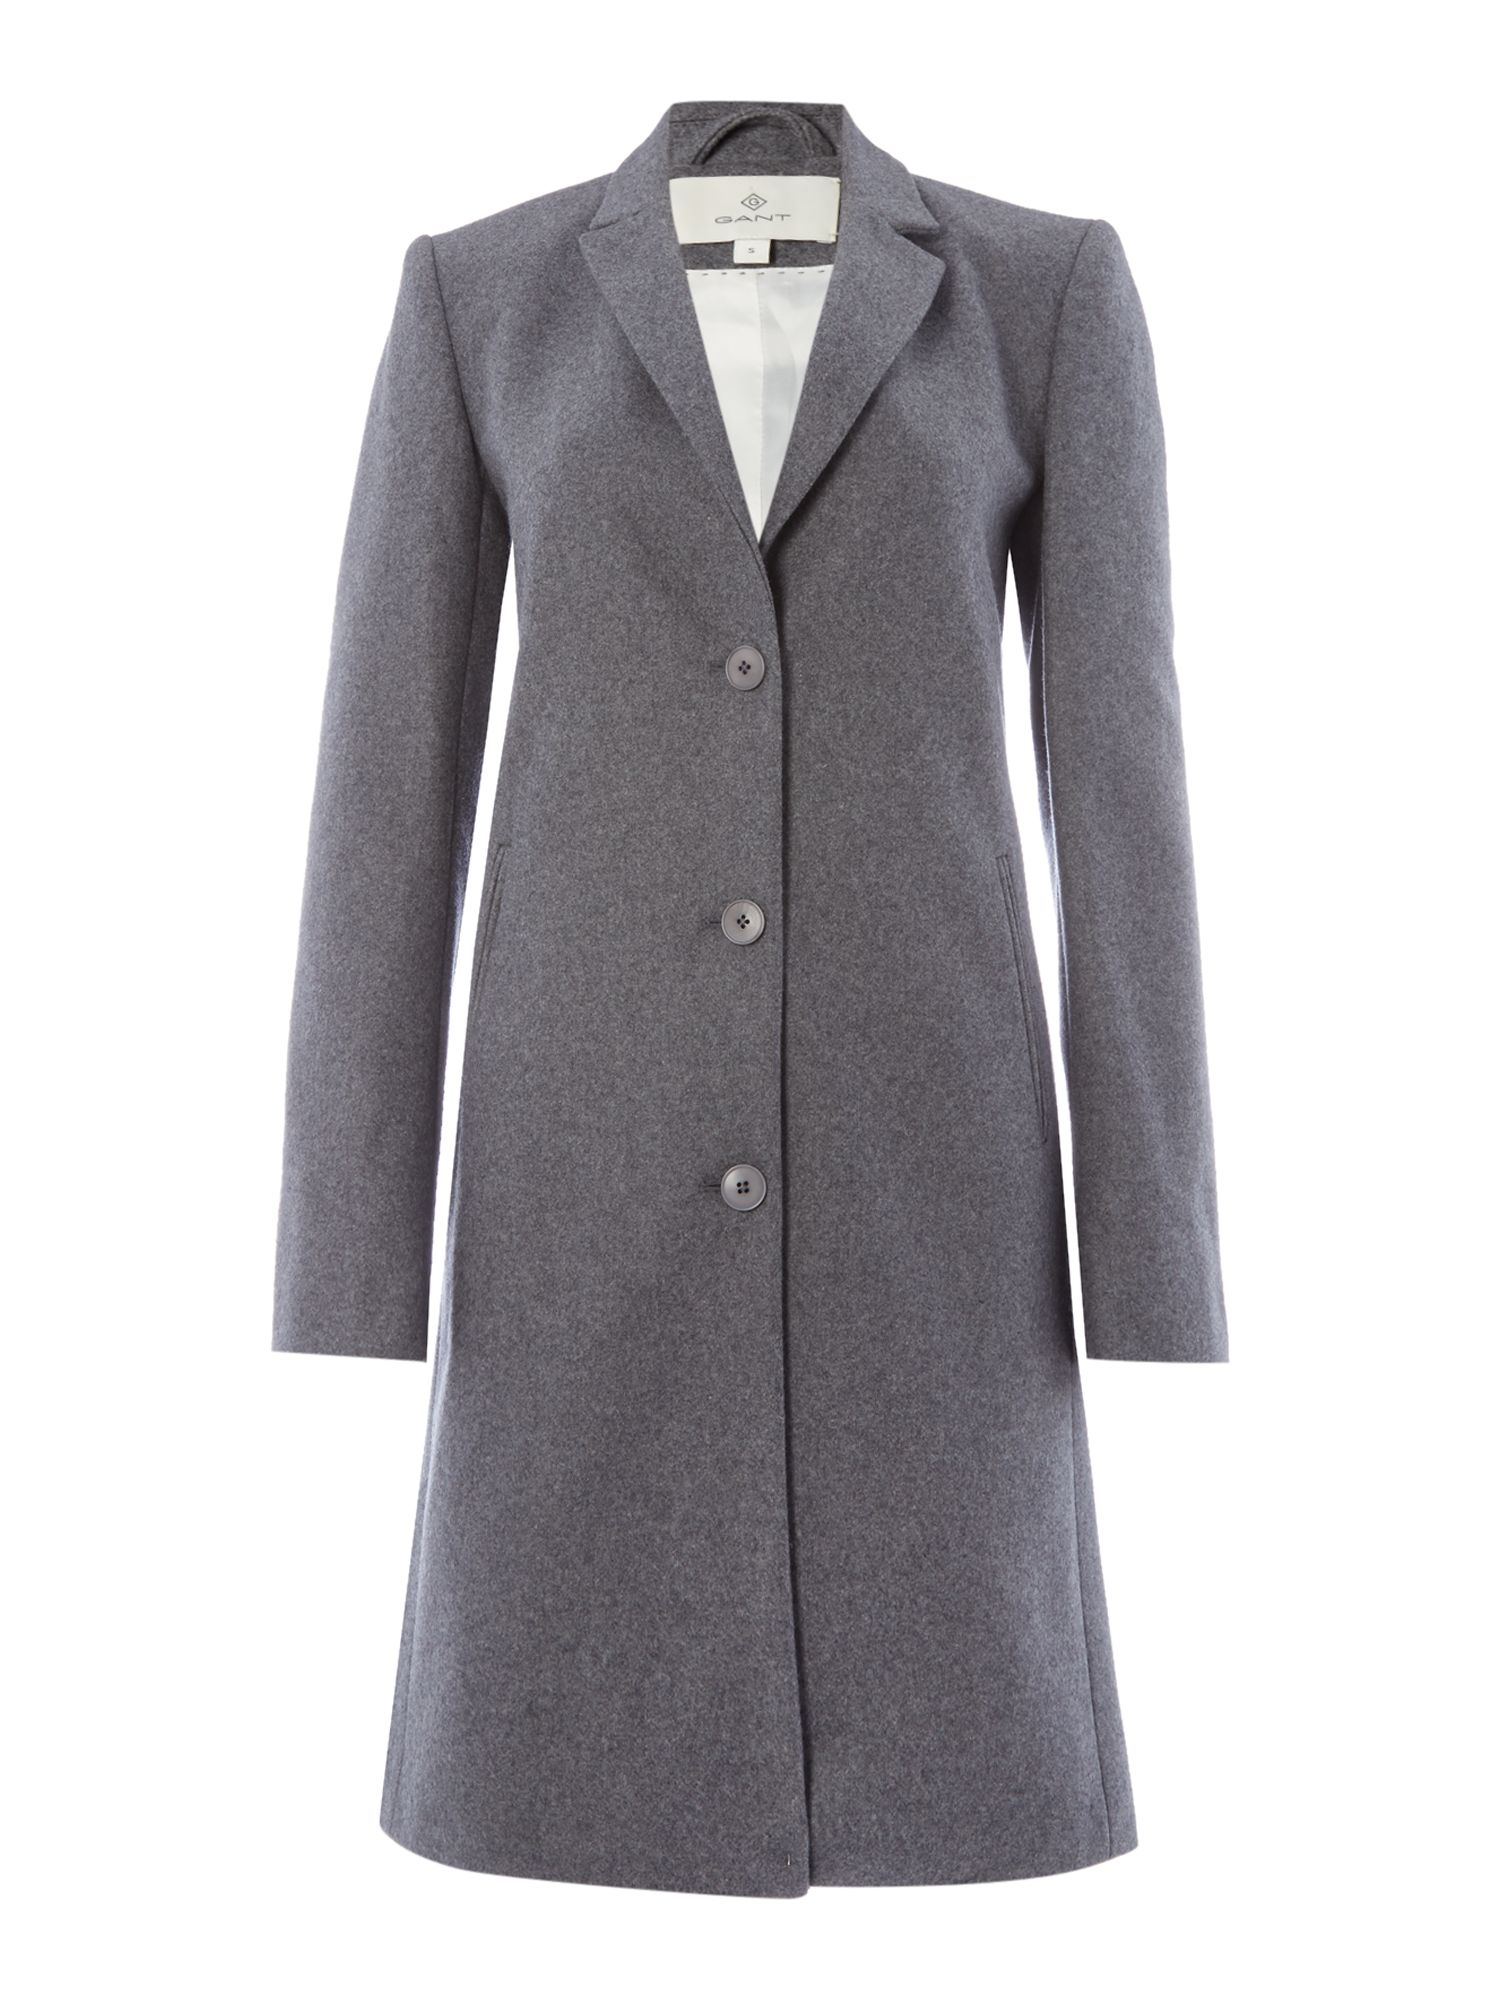 Gant Long Cashmere Coat With Button Front And Cuff, Grey